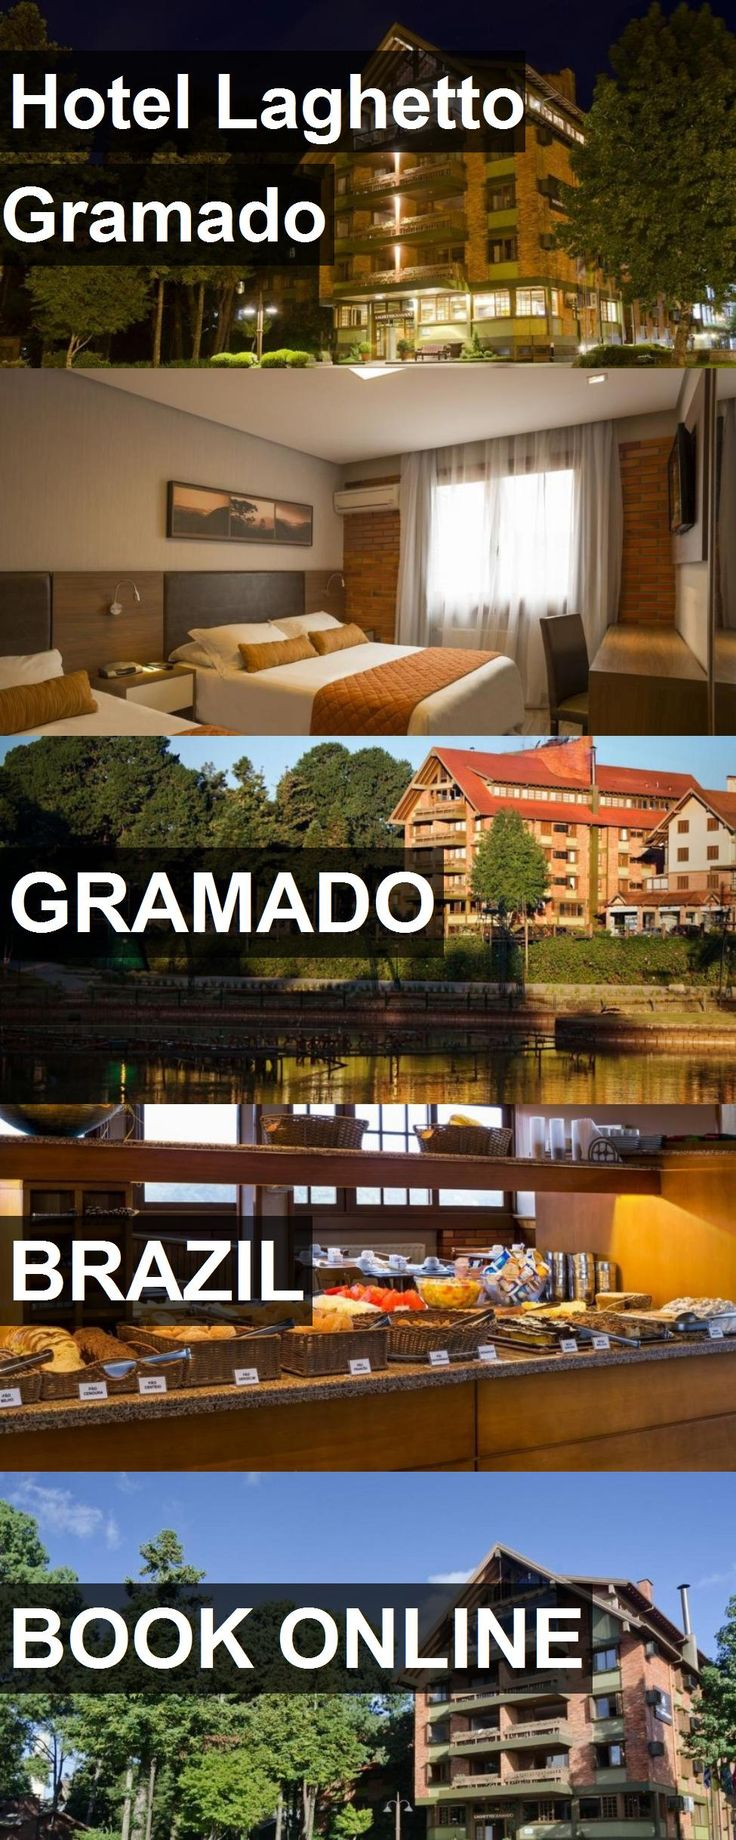 Hotel Hotel Laghetto Gramado in Gramado, Brazil. For more information, photos, reviews and best prices please follow the link. #Brazil #Gramado #HotelLaghettoGramado #hotel #travel #vacation